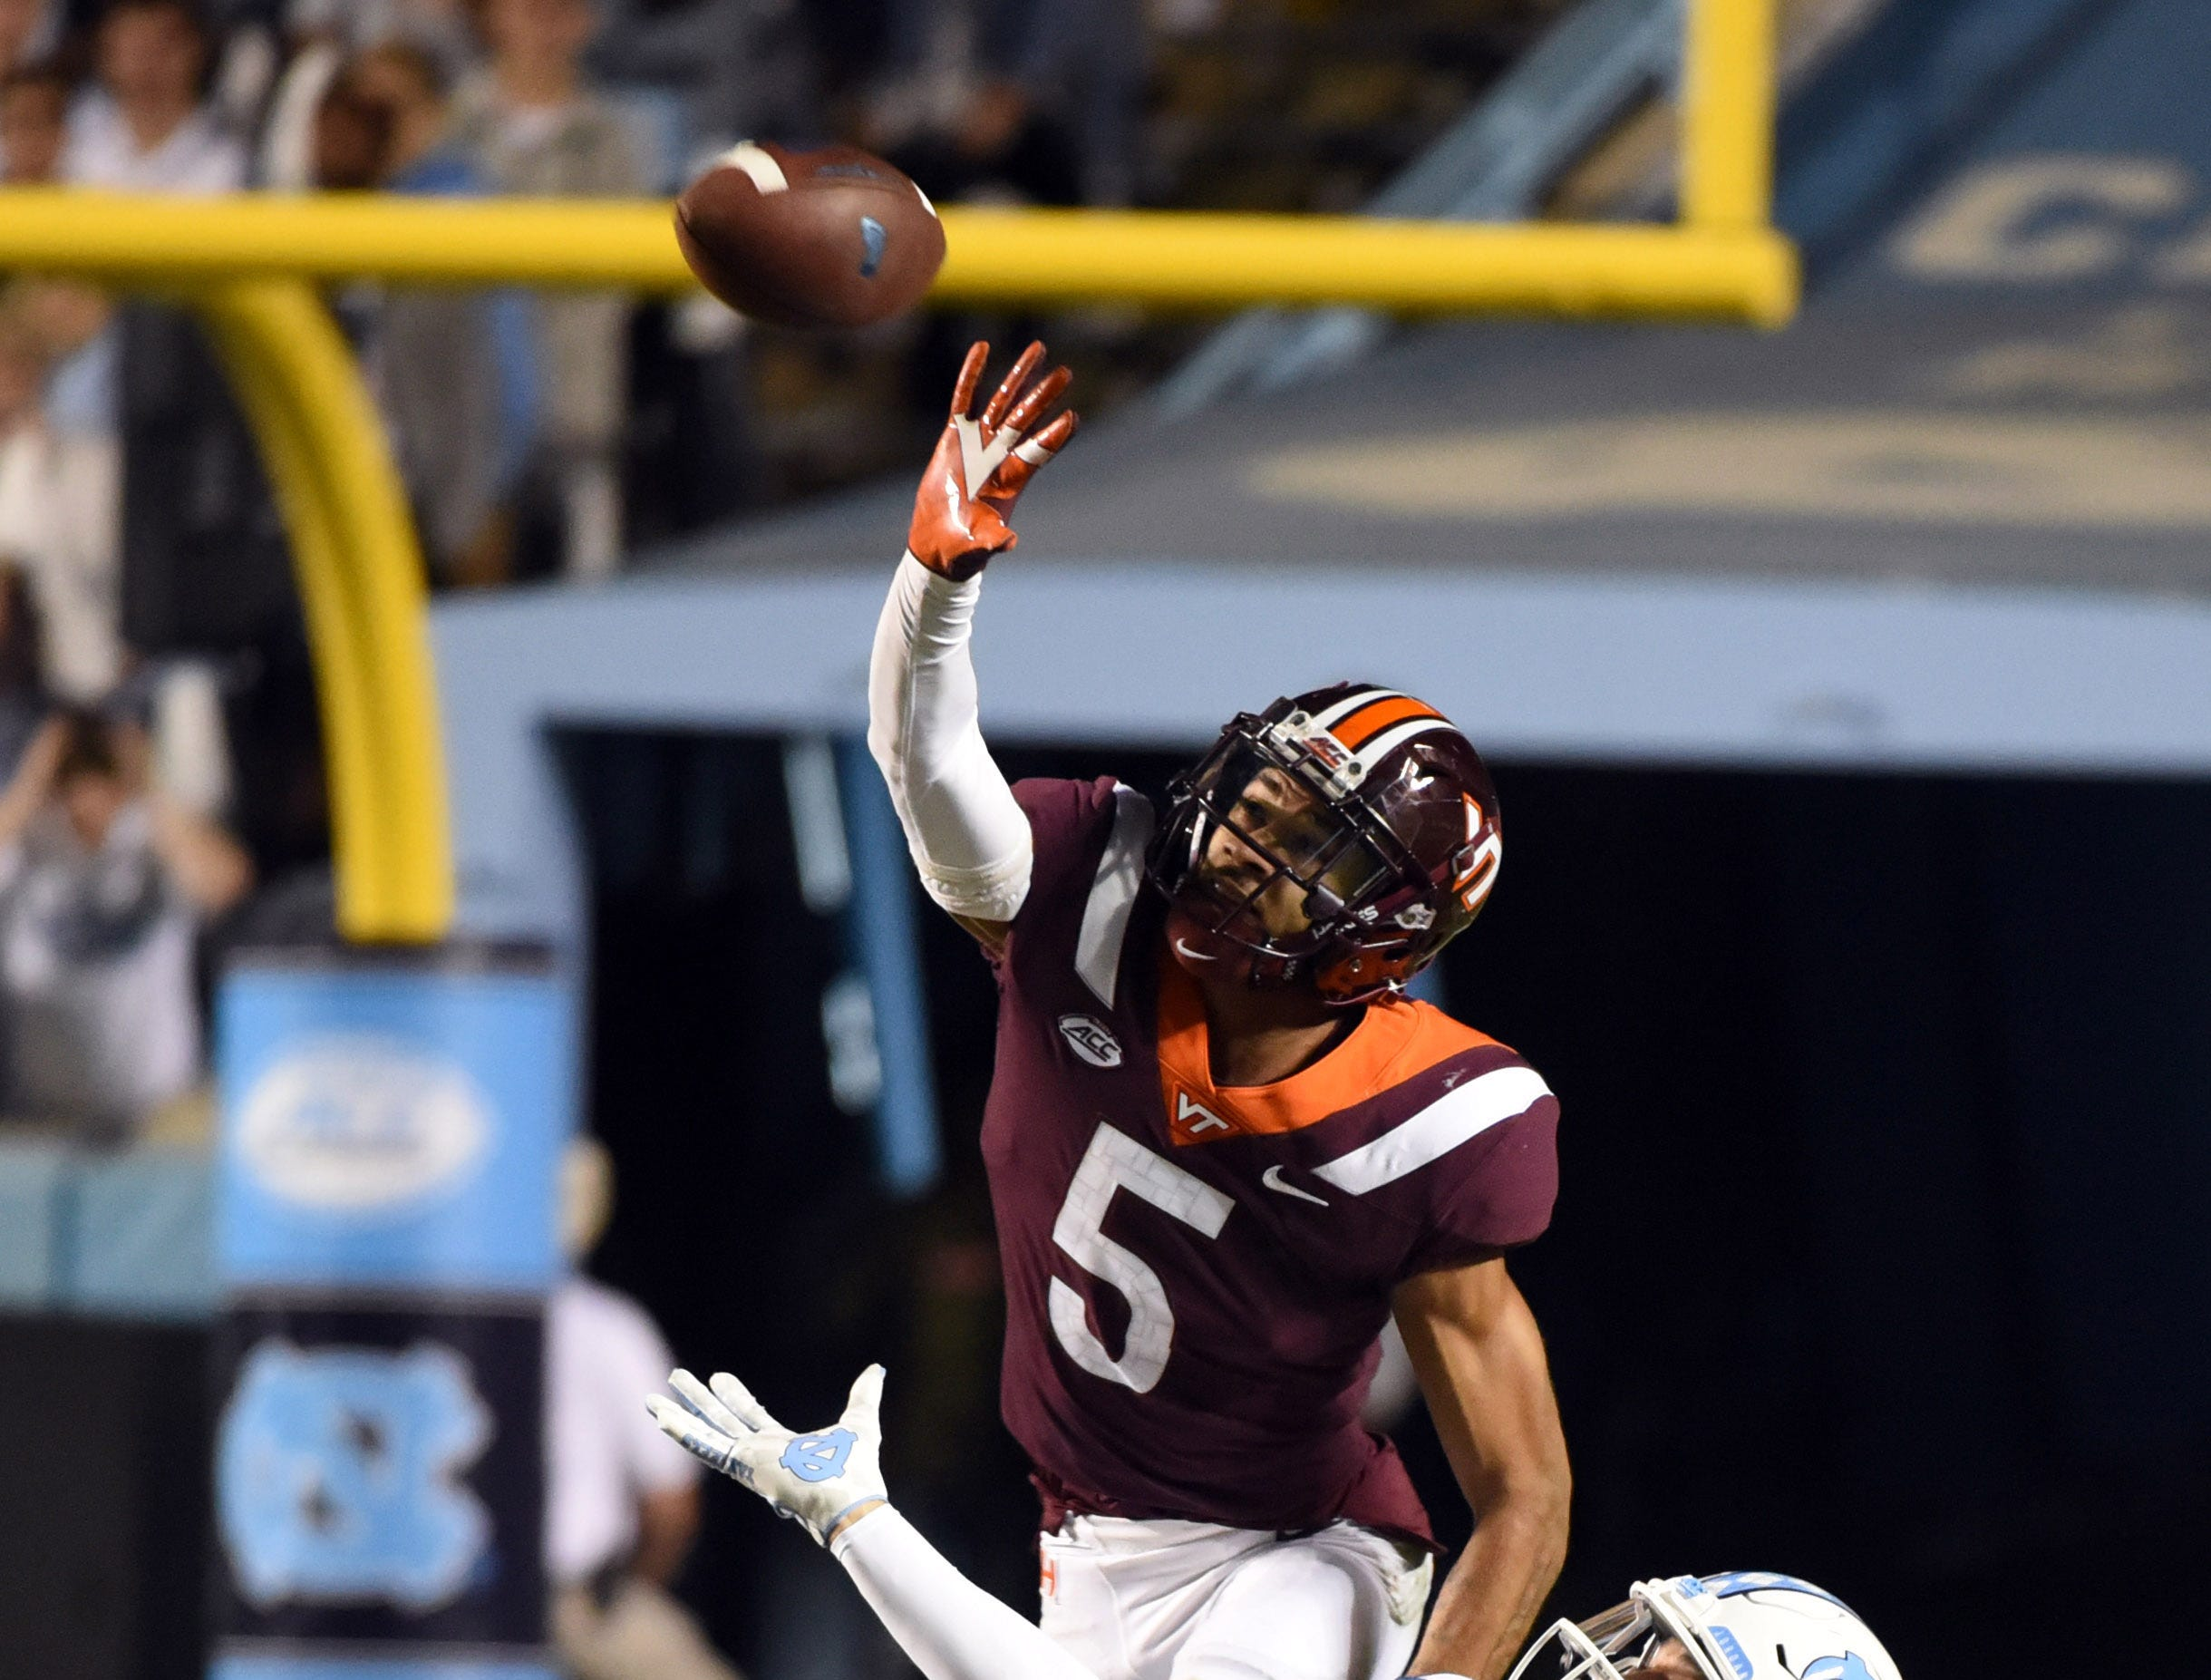 Virginia Tech Hokies defensive back Bryce Watts (5) knocks down a pass in front of North Carolina Tar Heels receiver Beau Corrales (88) during the second half at Kenan Memorial Stadium.